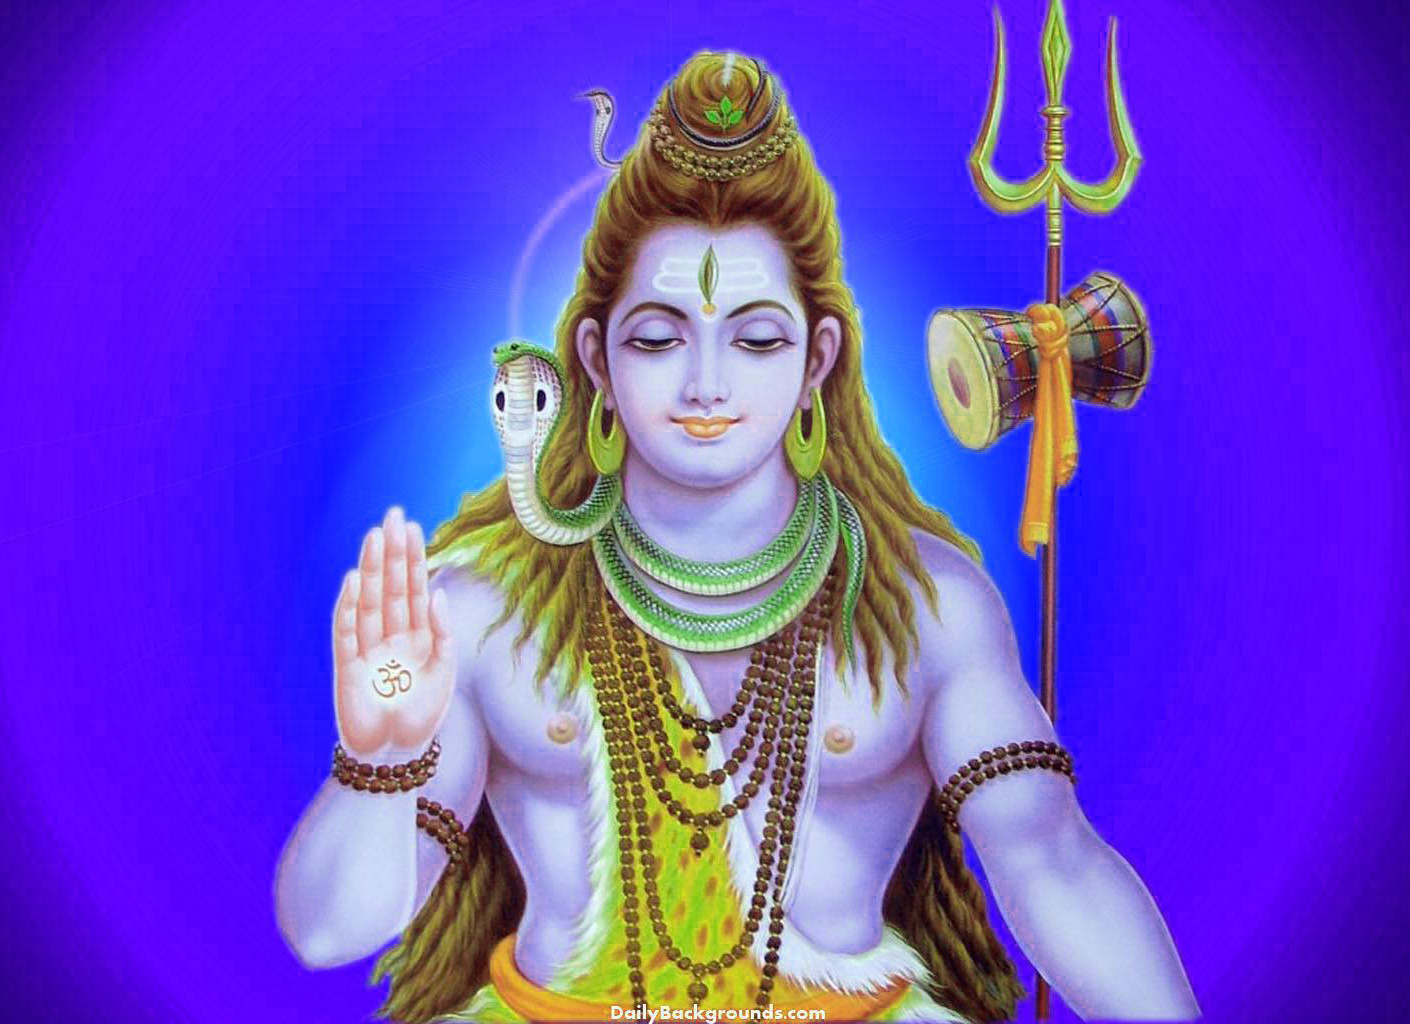 1080p Lord Shiva Images photo Download